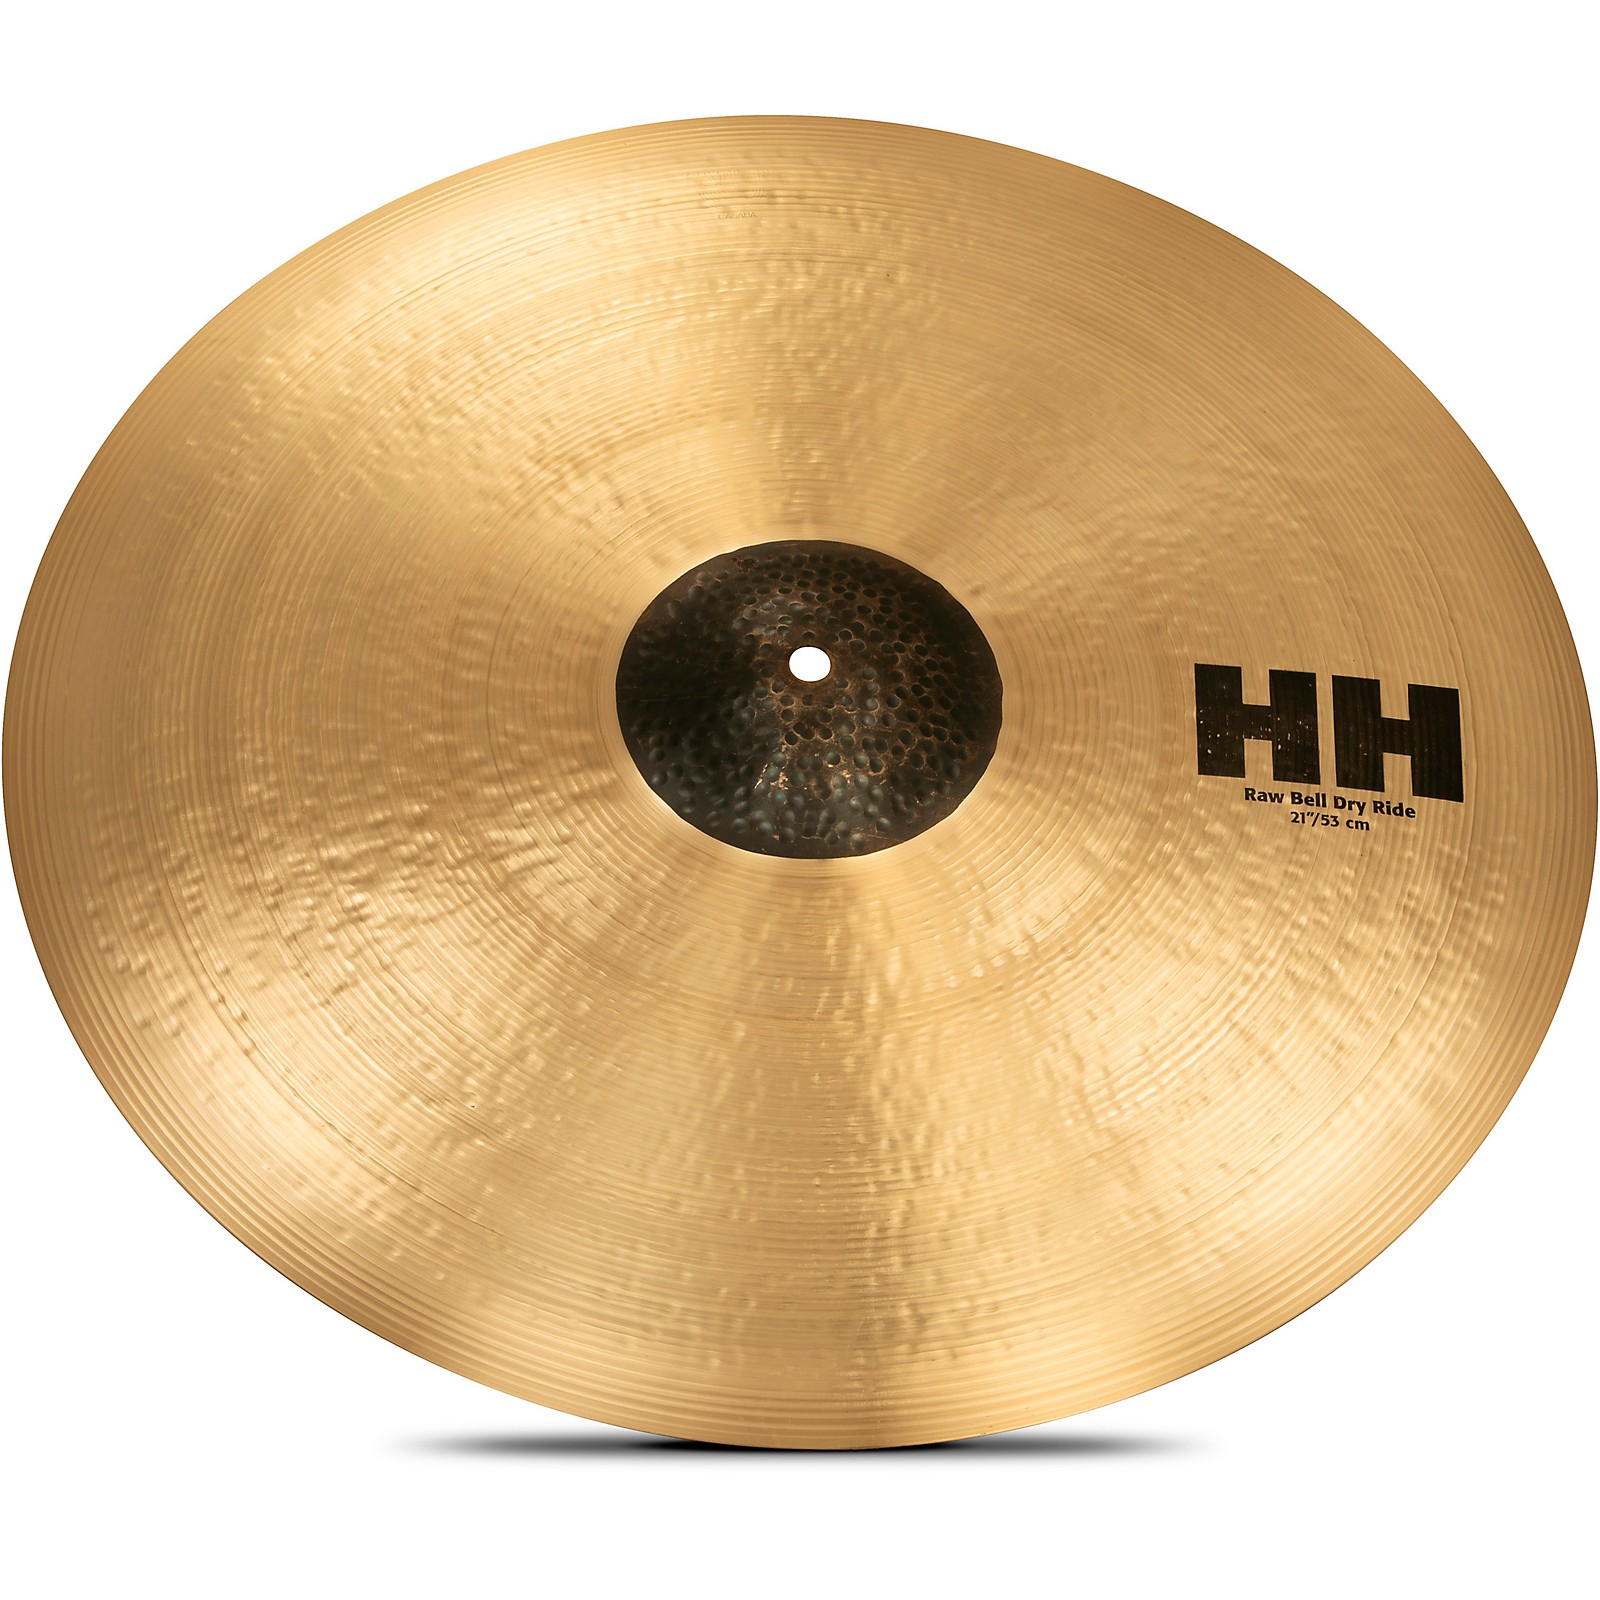 Sabian HH Series Raw Bell Dry Ride Cymbal